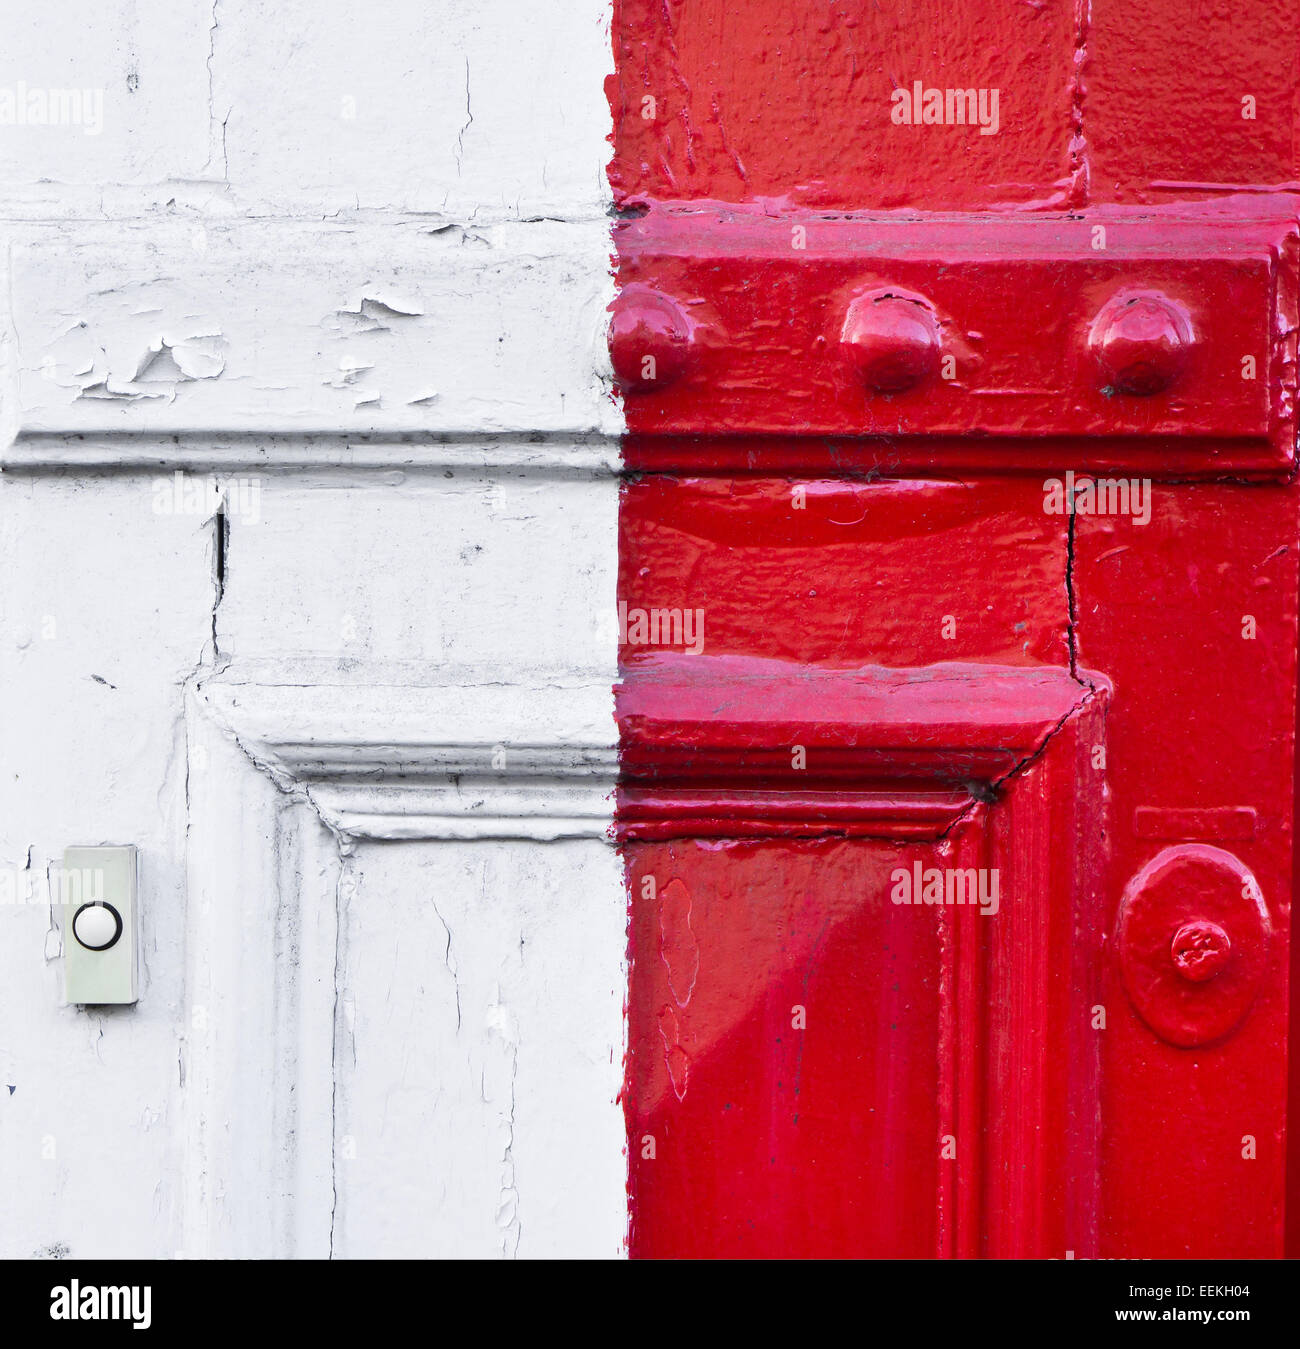 Red and white metal surfaces as a background - Stock Image